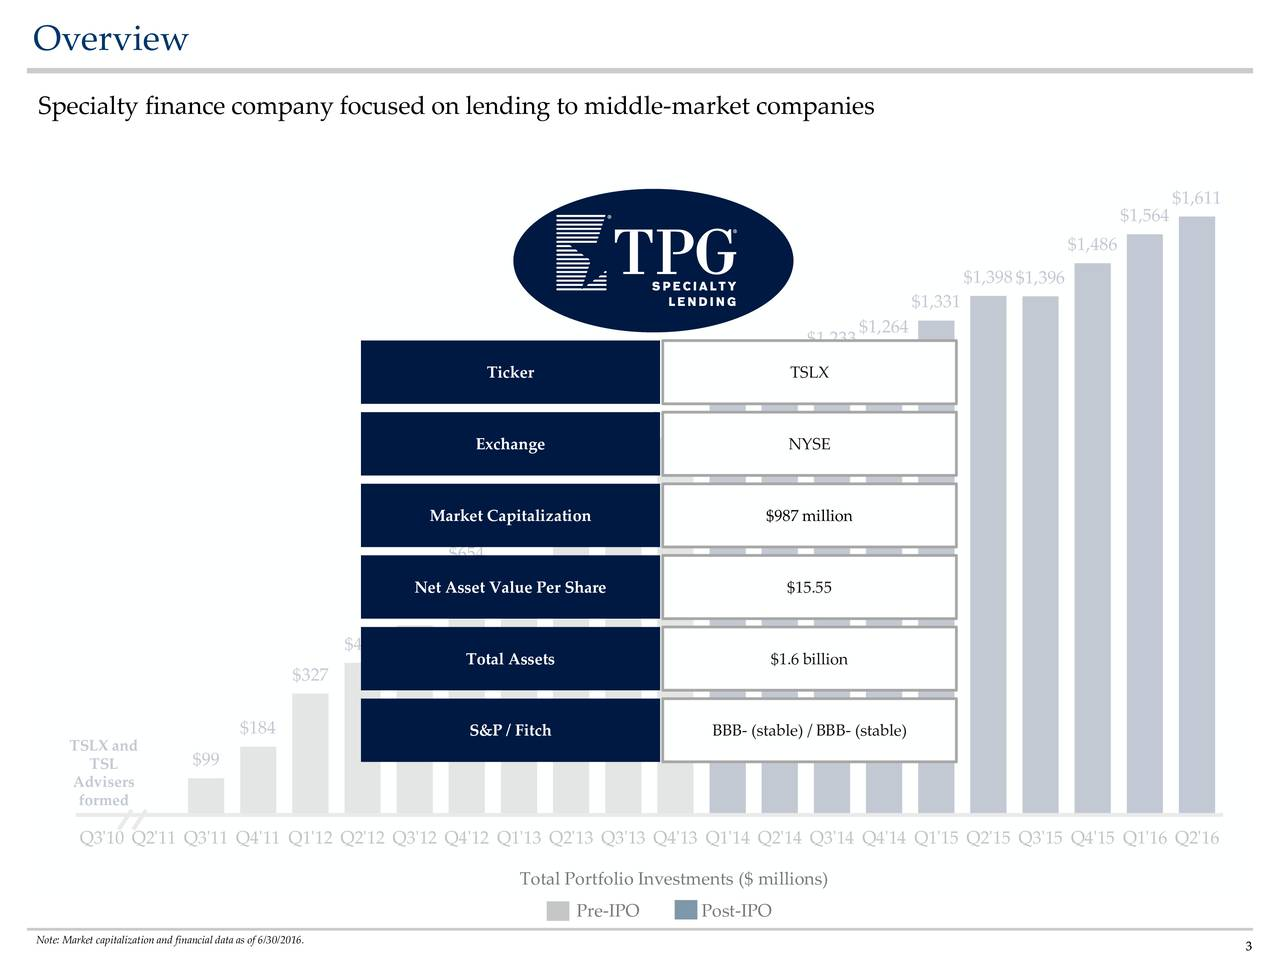 Specialty finance company focused on lending to middle-market companies $1,611 $1,564 $1,486 $1,398$1,396 $1,331 $1,264 $1,233 $1,196 Ticker TSLX $1,129 $1,016 Exchange NYSE $889 $787 Market Capitalization $987 million $654 $626 Net Asset Value Per Share $15.55 $511 $410 Total Assets $1.6 billion $327 $184 S&P / Fitch BBB- (stable) / BBB- (stable) TSLX and TSL $99 Advisers formed $0 Q3'10 Q2'11 Q3'11 Q4'11 Q1'12 Q2'12 Q3'12 Q4'12 Q1'13 Q2'13 Q3'13 Q4'13 Q1'14 Q2'14 Q3'14 Q4'14 Q1'15 Q2'15 Q3'15 Q4'15 Q1'16 Q2'16 Total Portfolio Investments ($ millions) Pre-IPO Post-IPO Note: Market capitalization and financial data as of 6/30/2016. 3